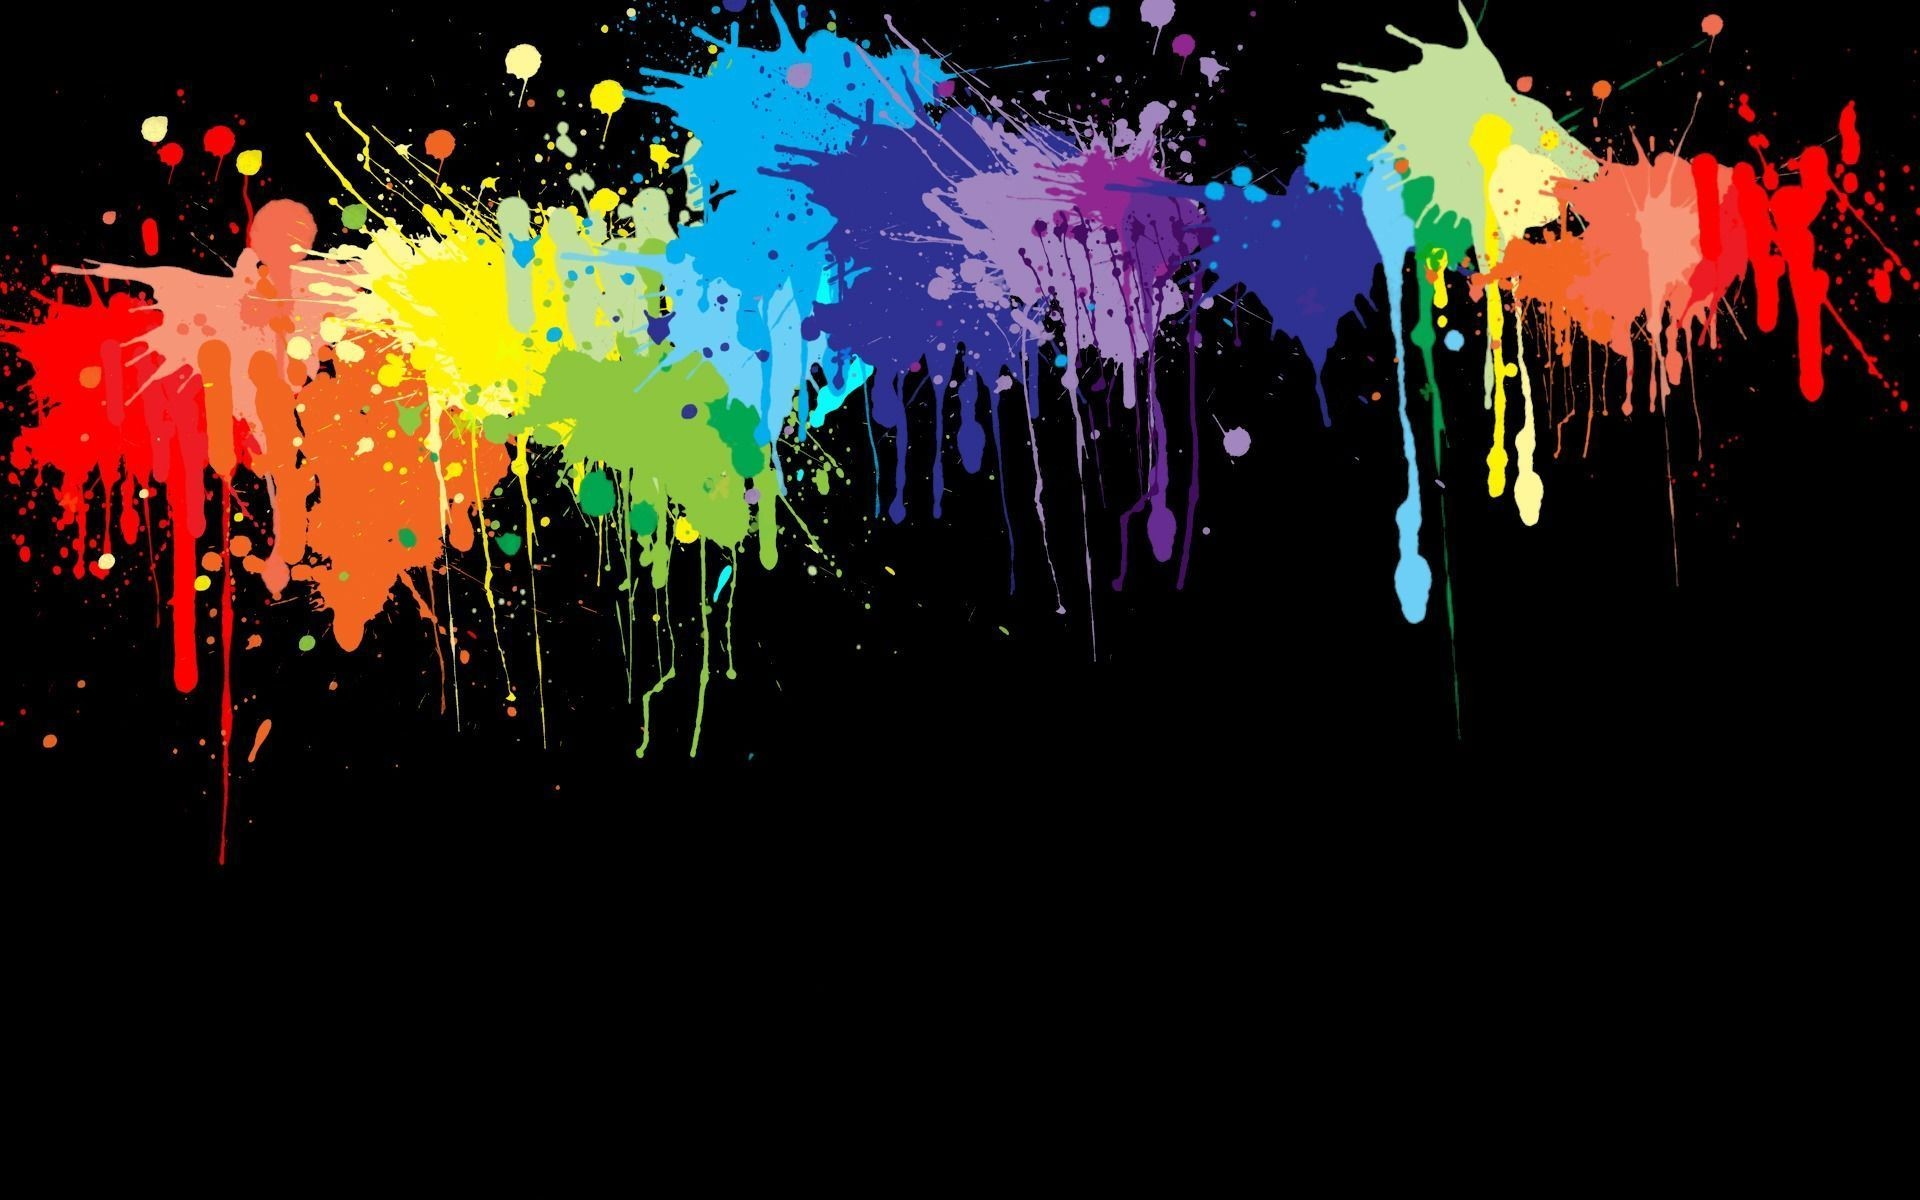 Bright color background wallpaper Wallpapers – HD Wallpapers 87567